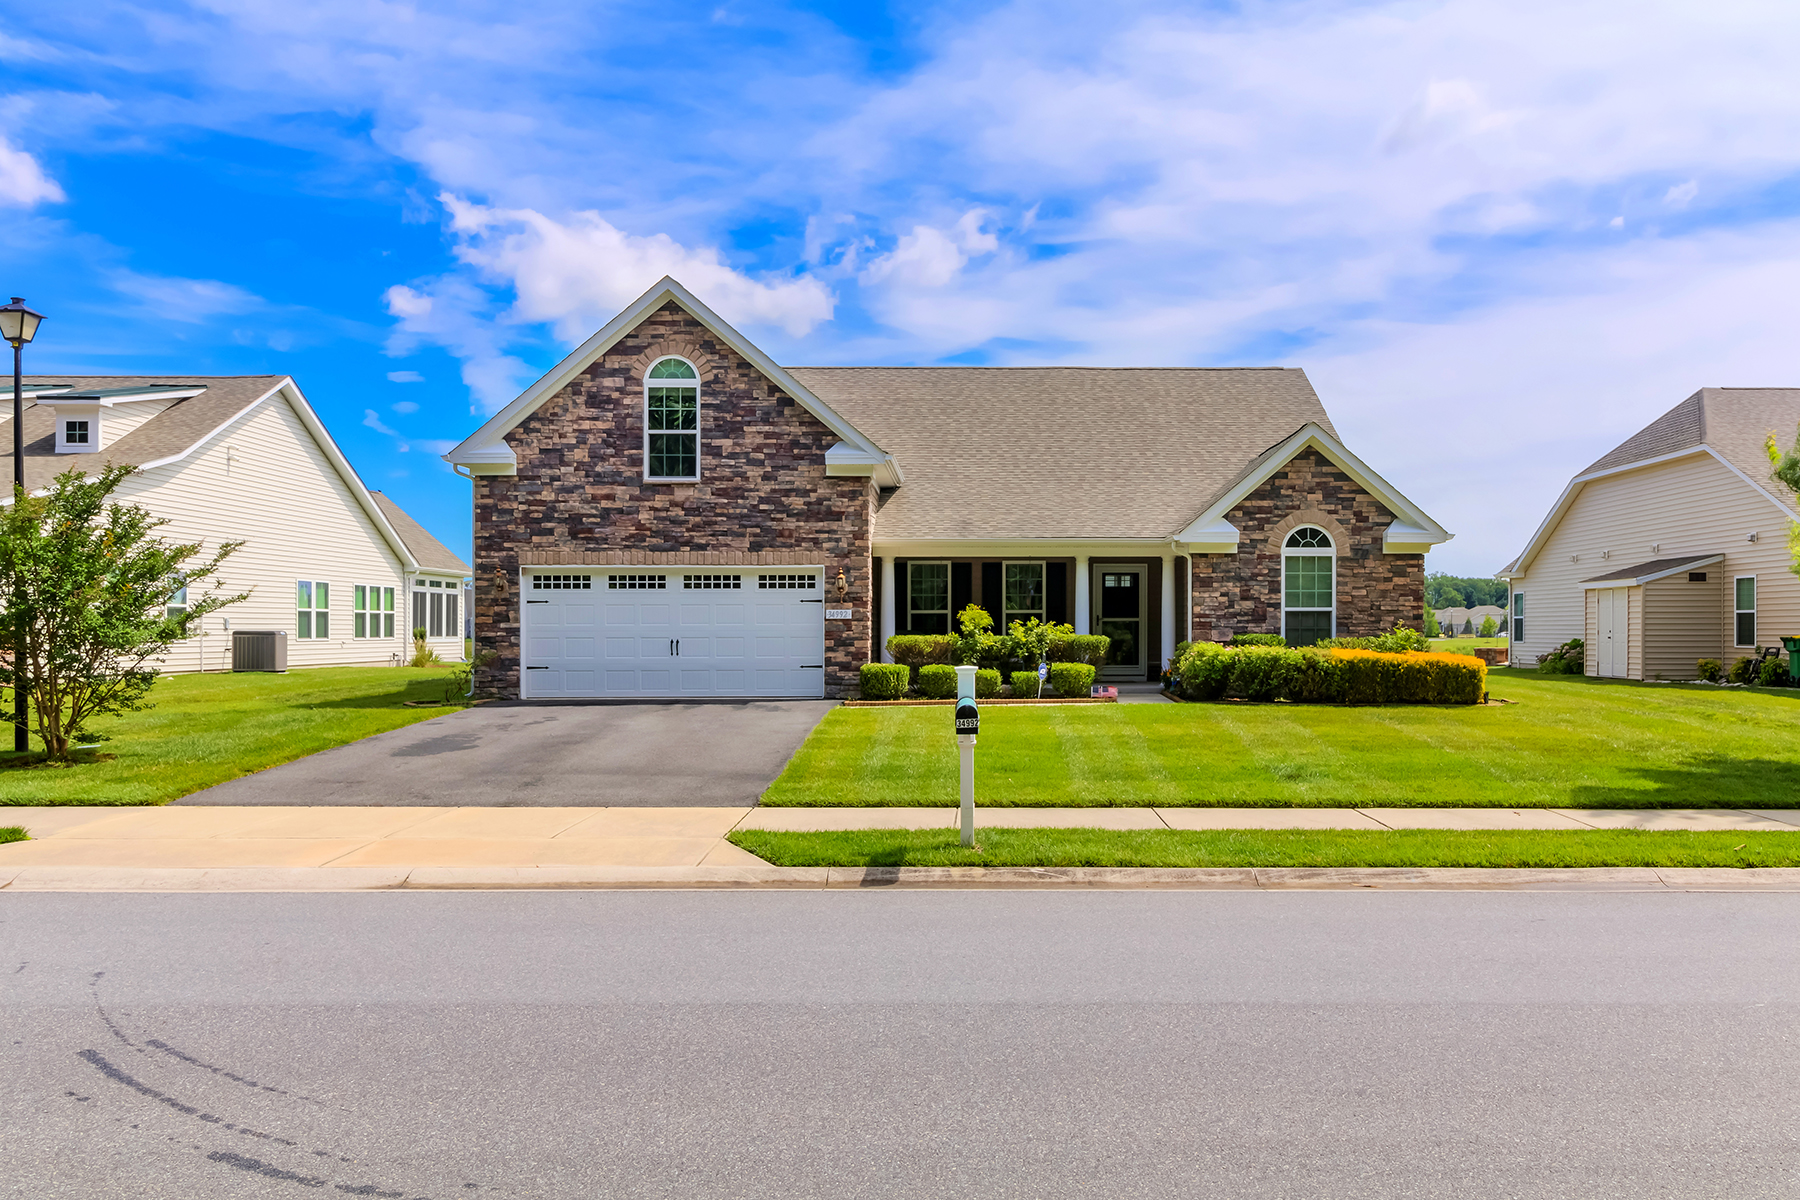 Single Family Homes for Active at 34992 Seagrass Plantation Lane Dagsboro, Delaware 19939 United States